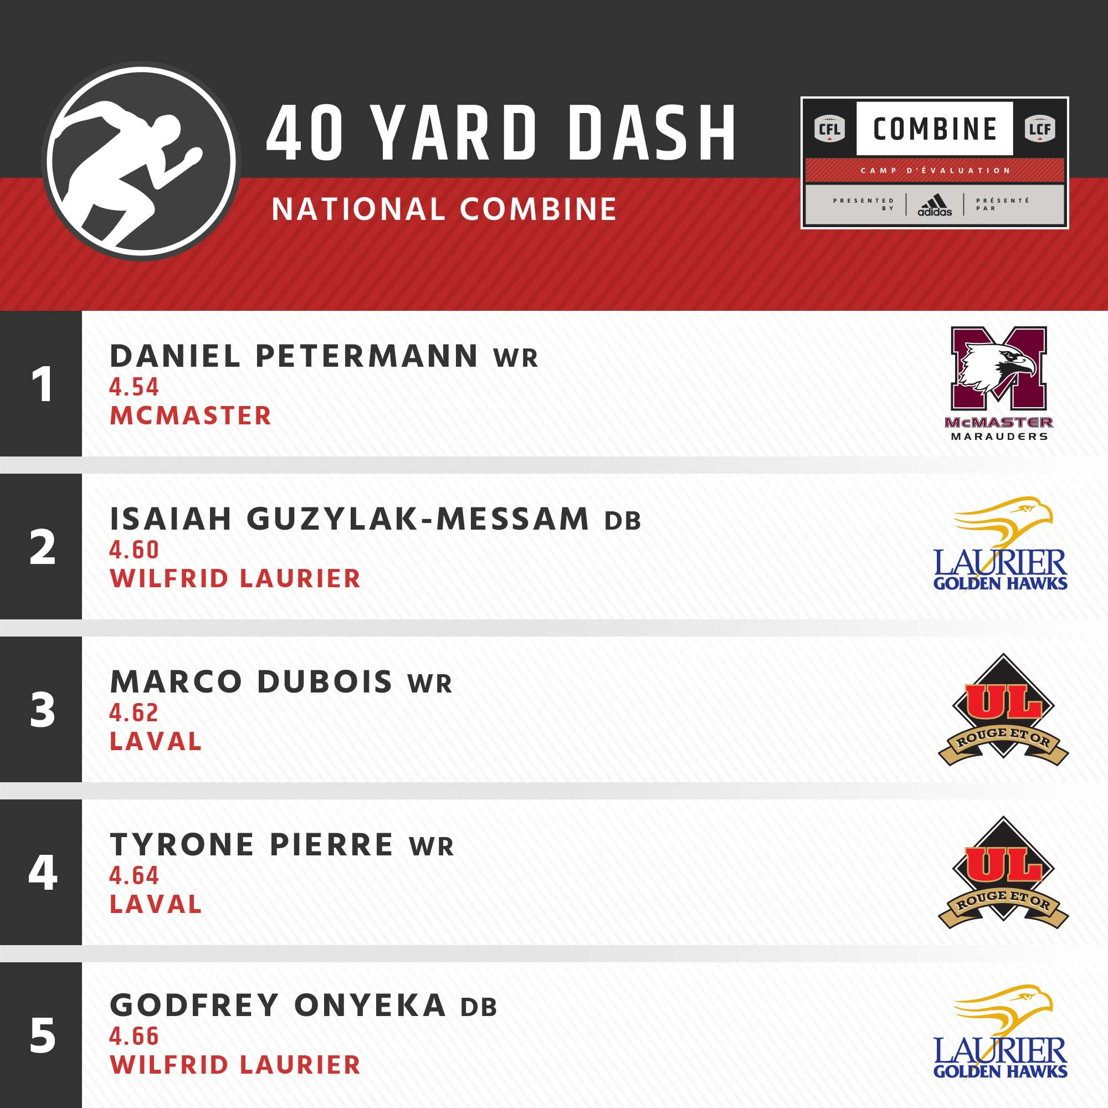 The top 5 competitors in the 40-yard dash at the CFL Combine presented by adidas.